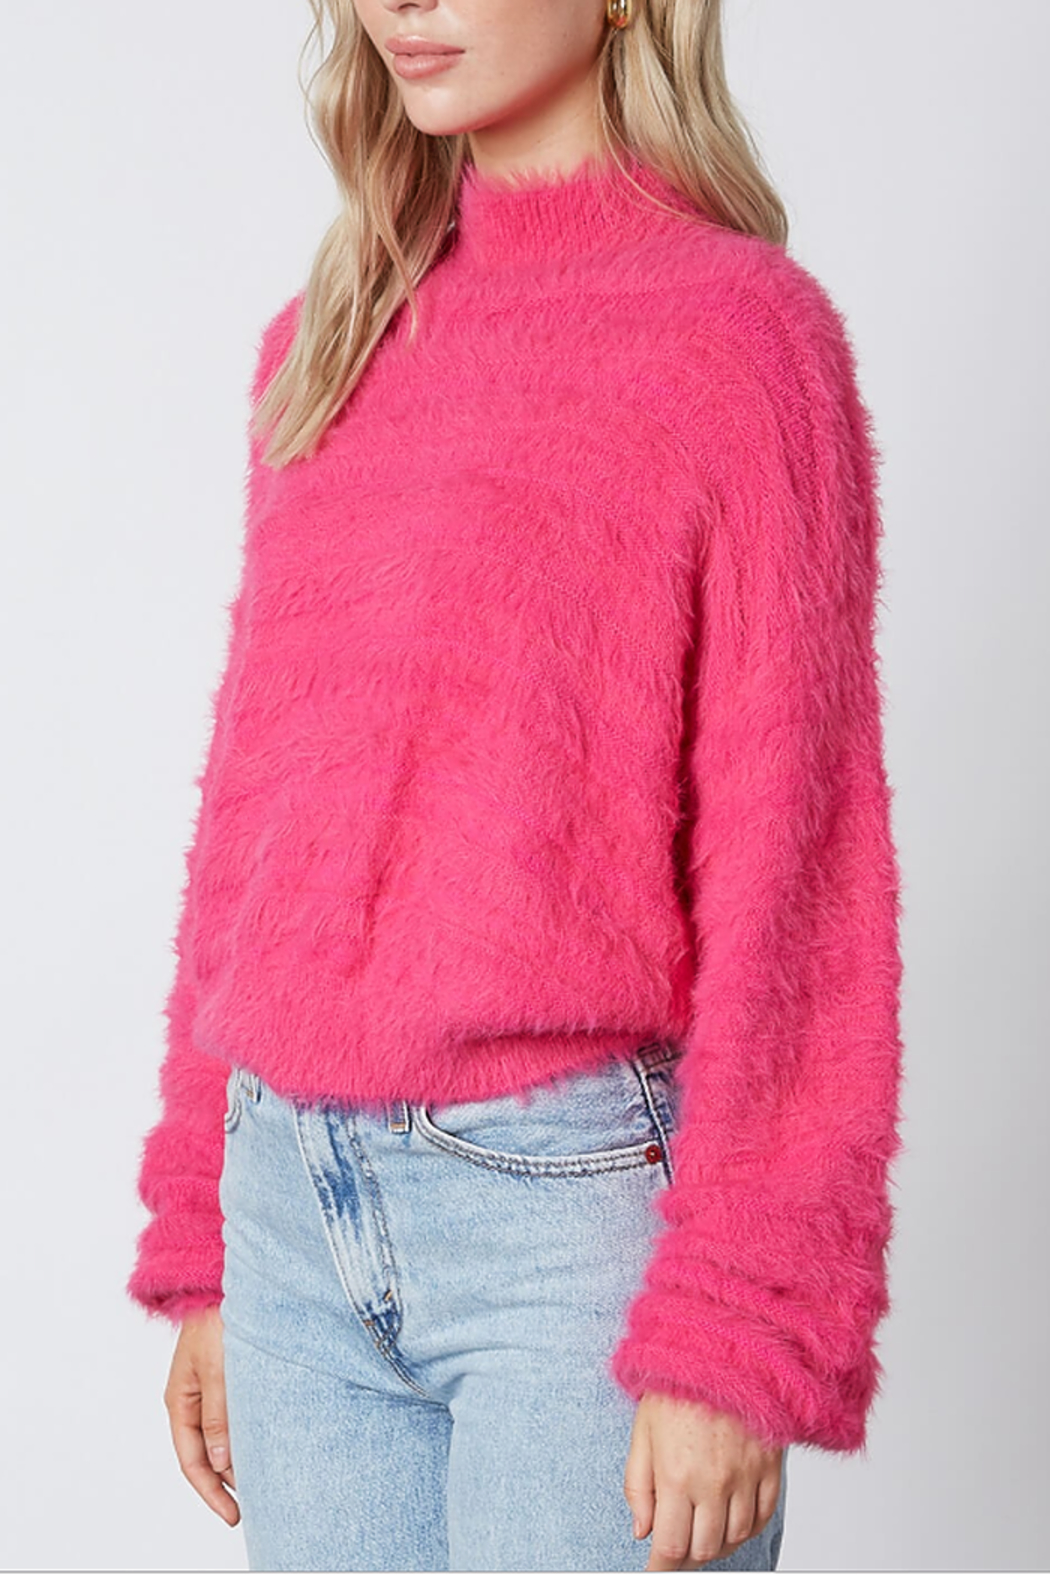 Cotton Candy  Fuzzy Mock Neck Sweater - Front Full Image